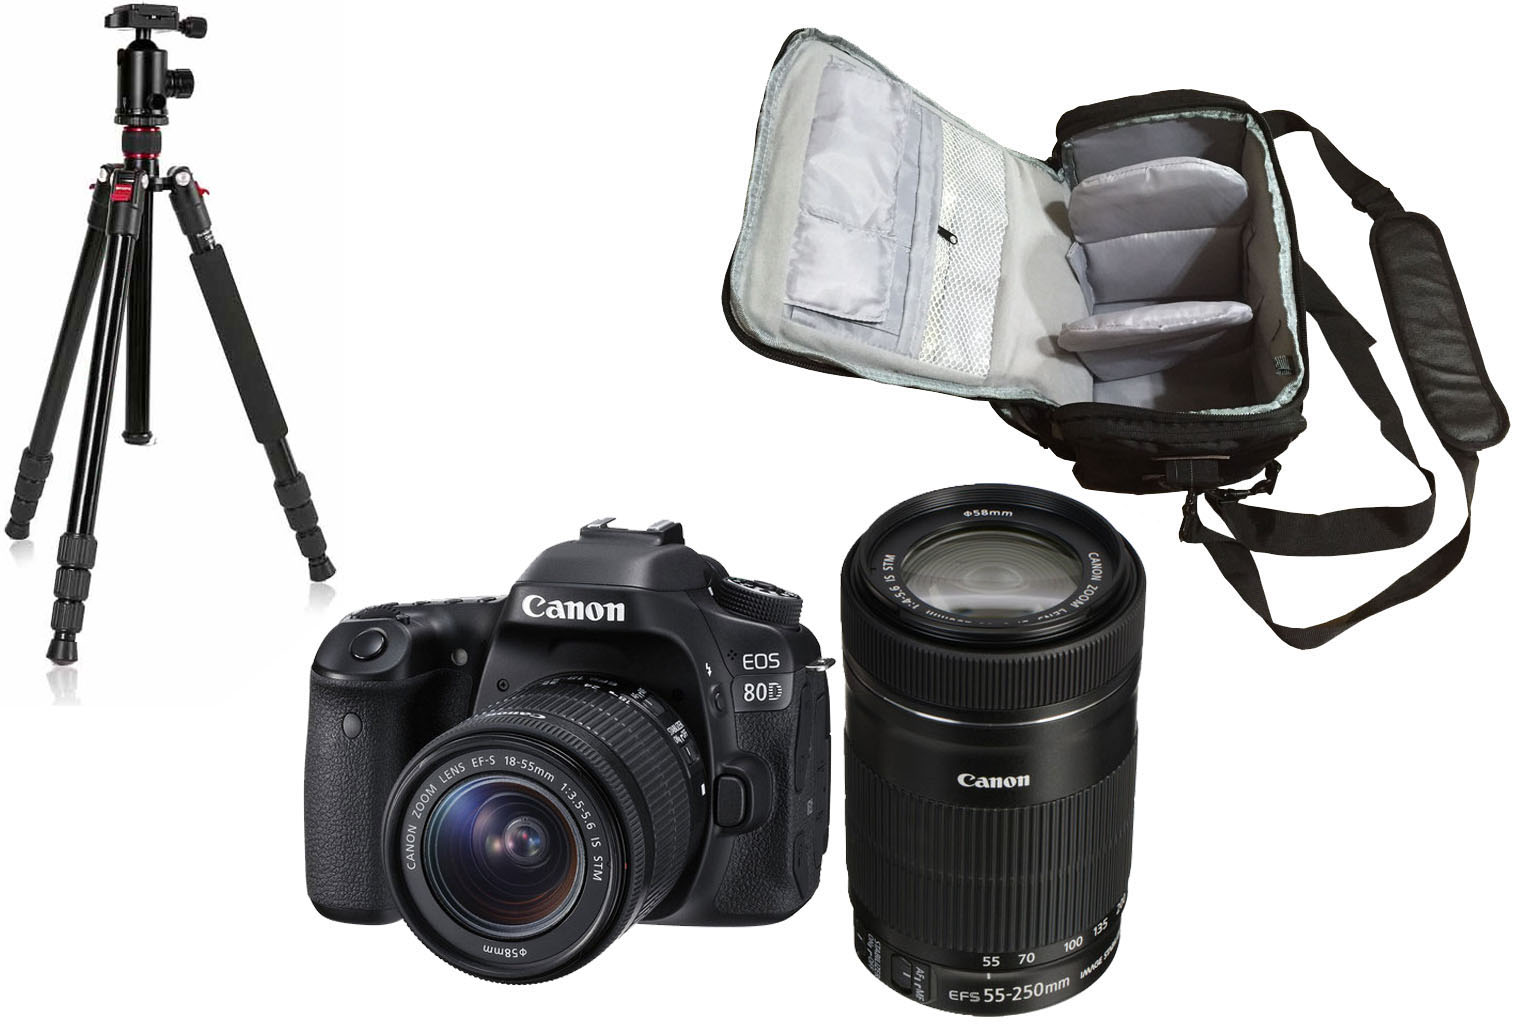 Canon Eos 80d 18 55 250 Camera Bag Tripod Kit Wi Fi Dslr With 200mm 250mm Next Day Delivery